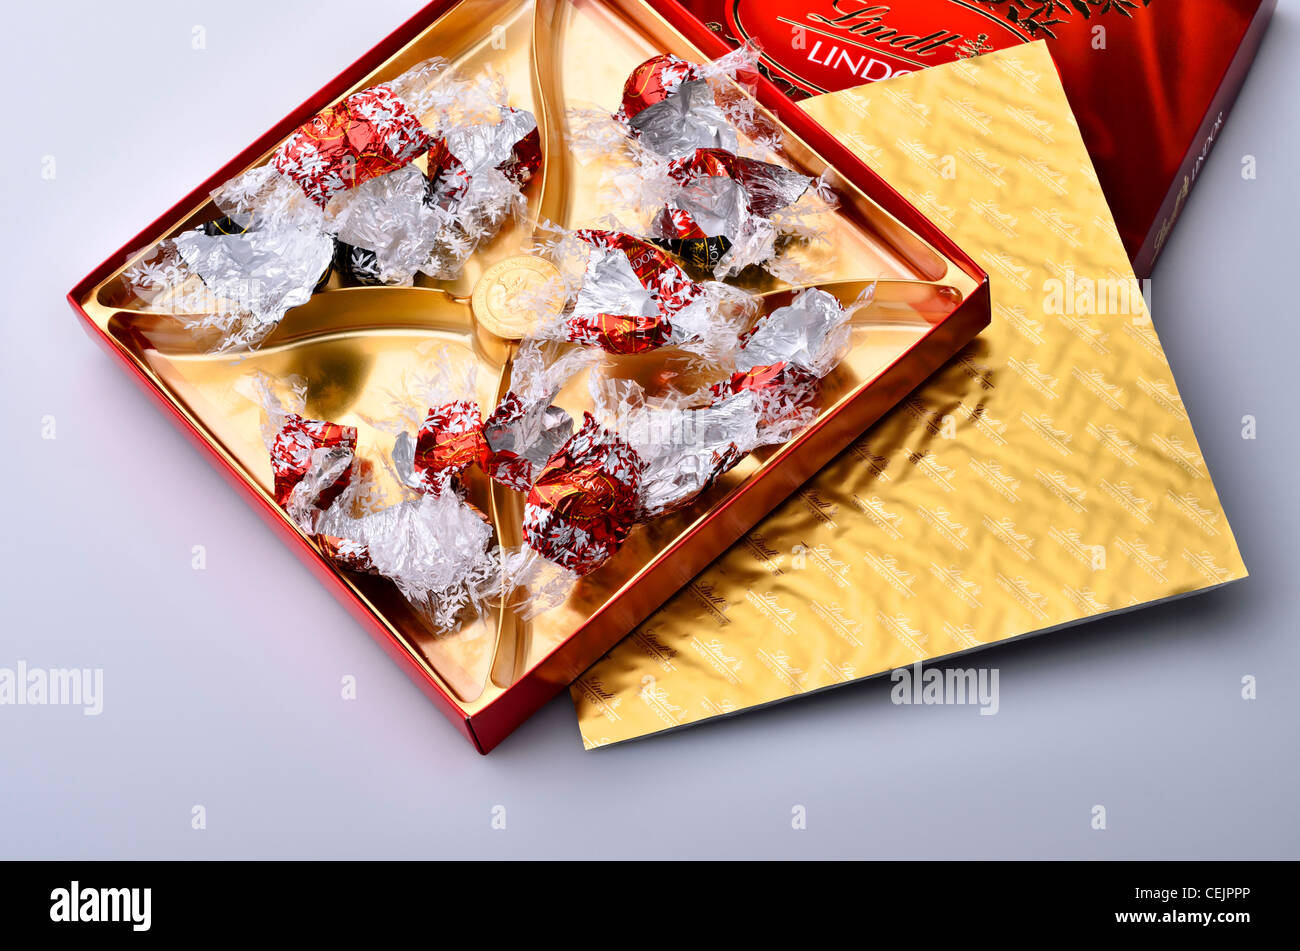 Empty box of Lindor Lindt milk chocolate truffles with only wrappers remaining - Stock Image